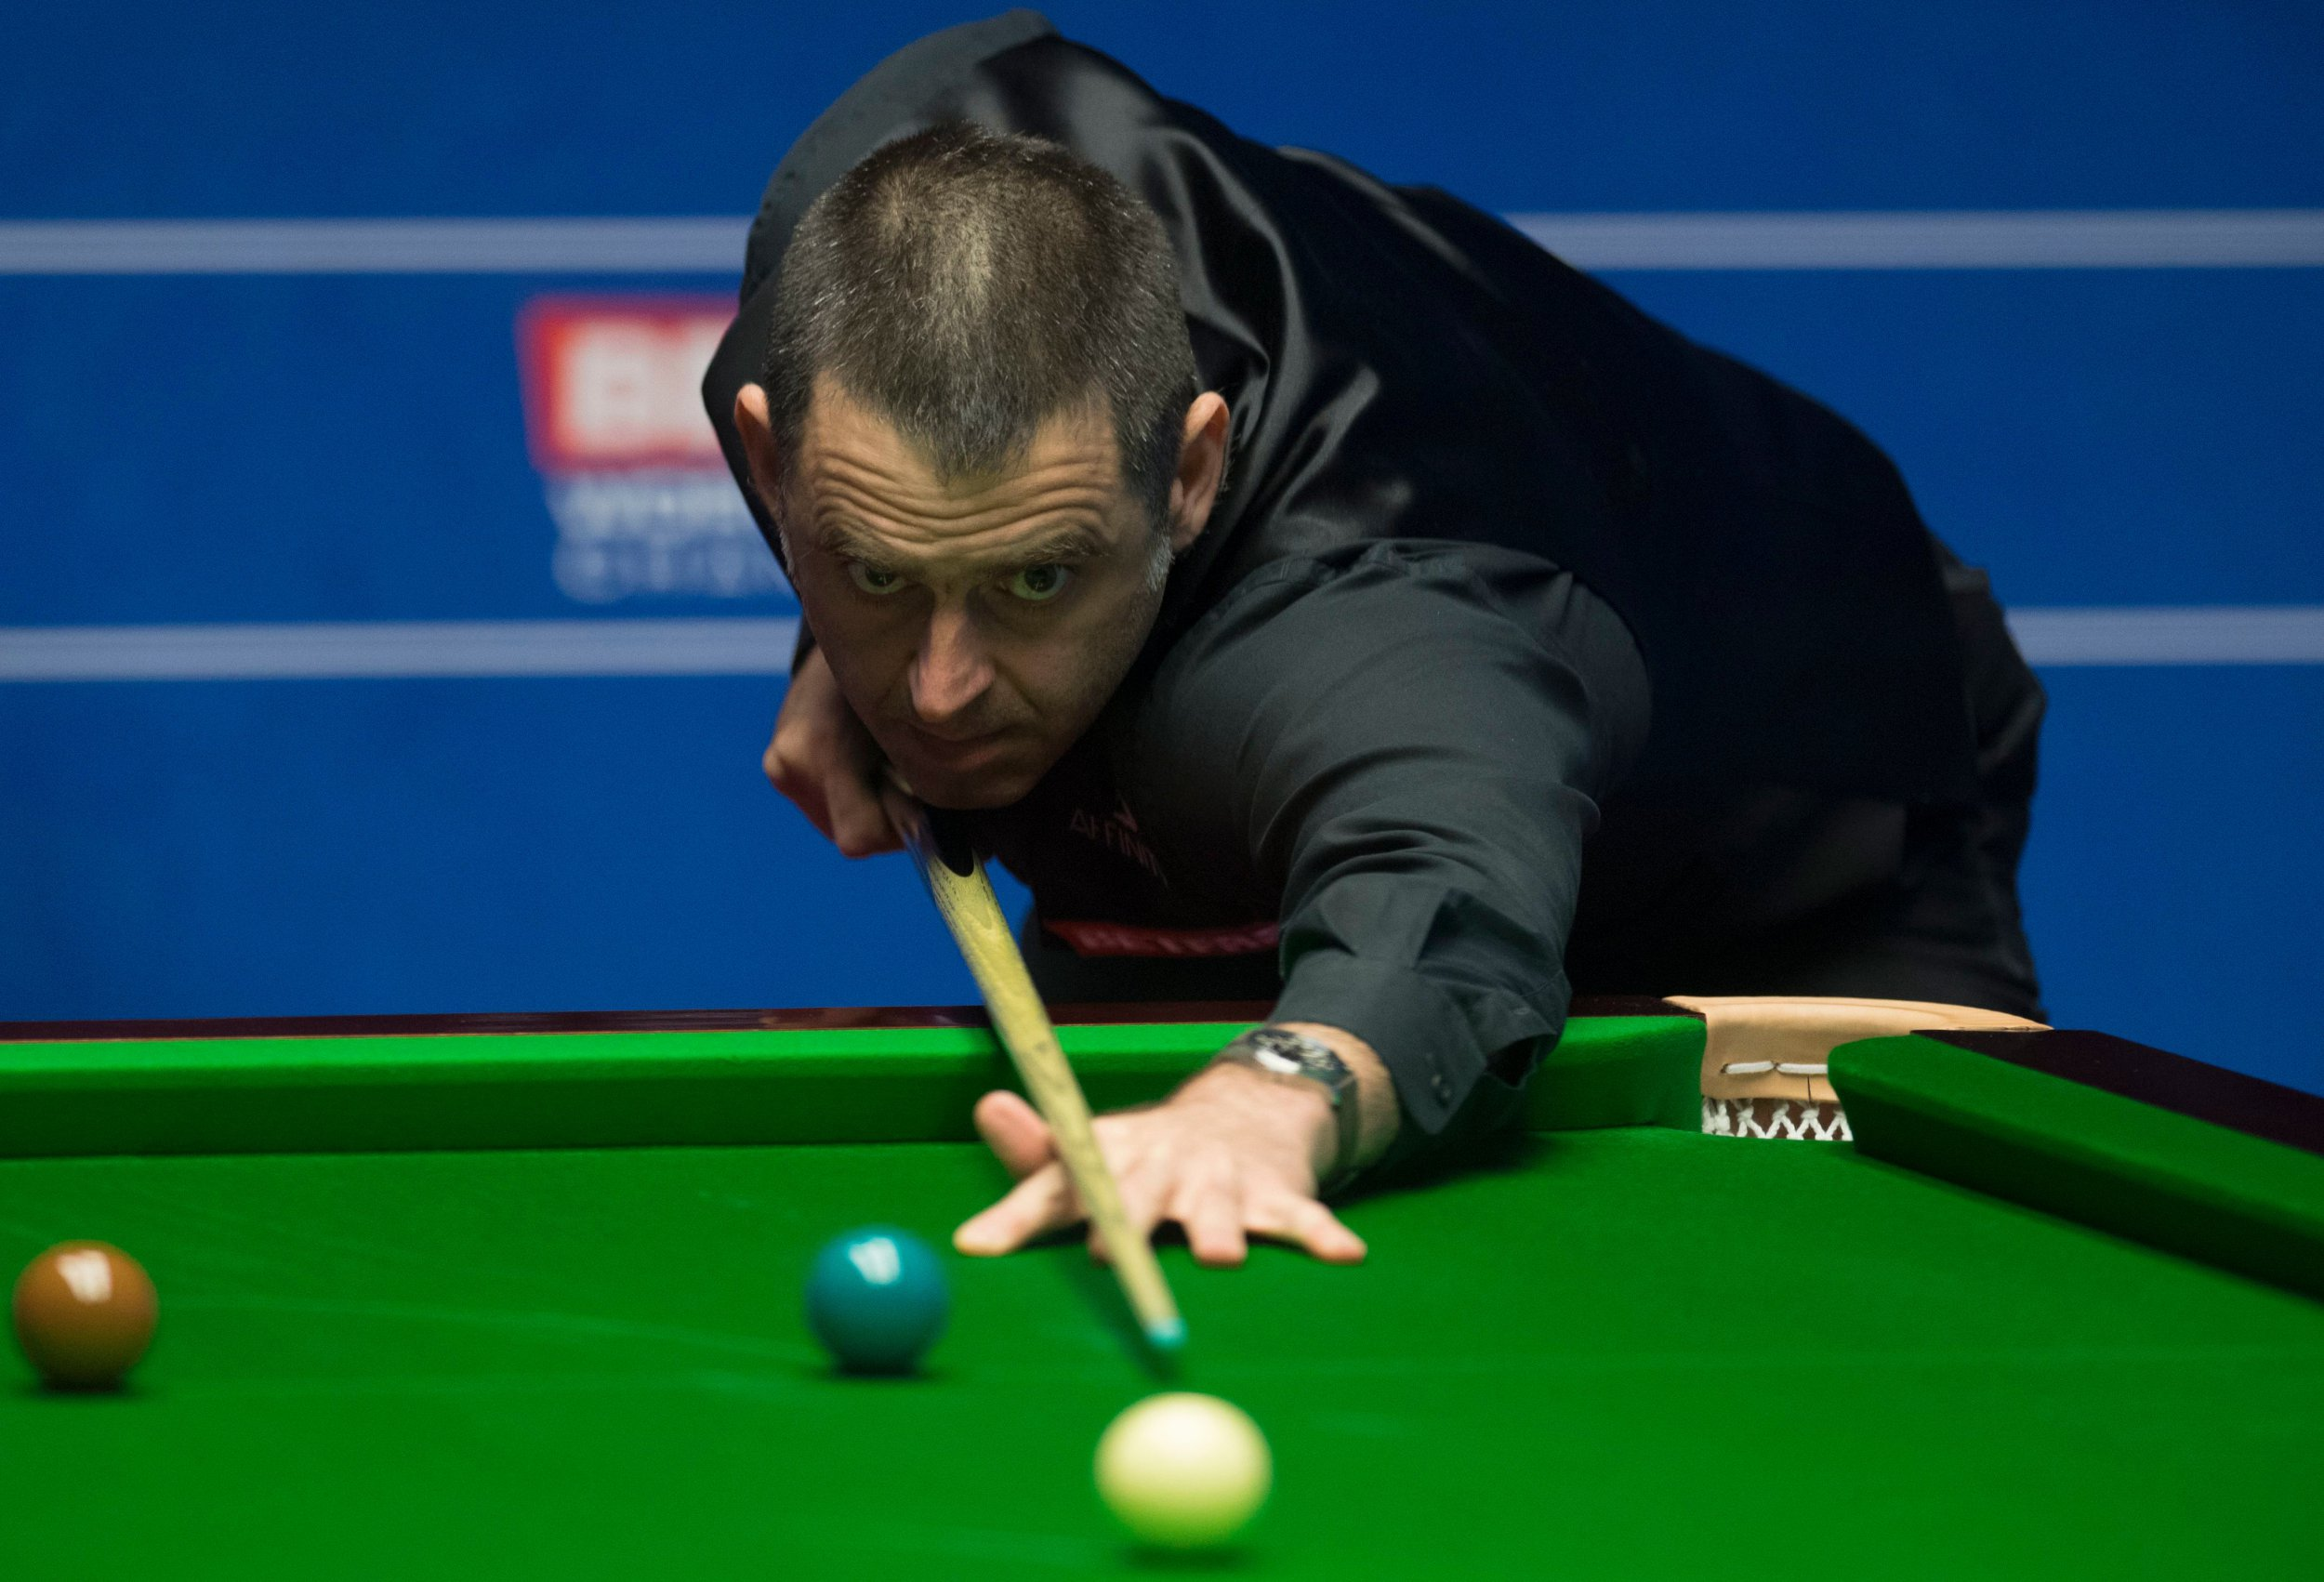 Ronnie O'Sullivan knocked out of Snooker World Championship by amateur James Cahill